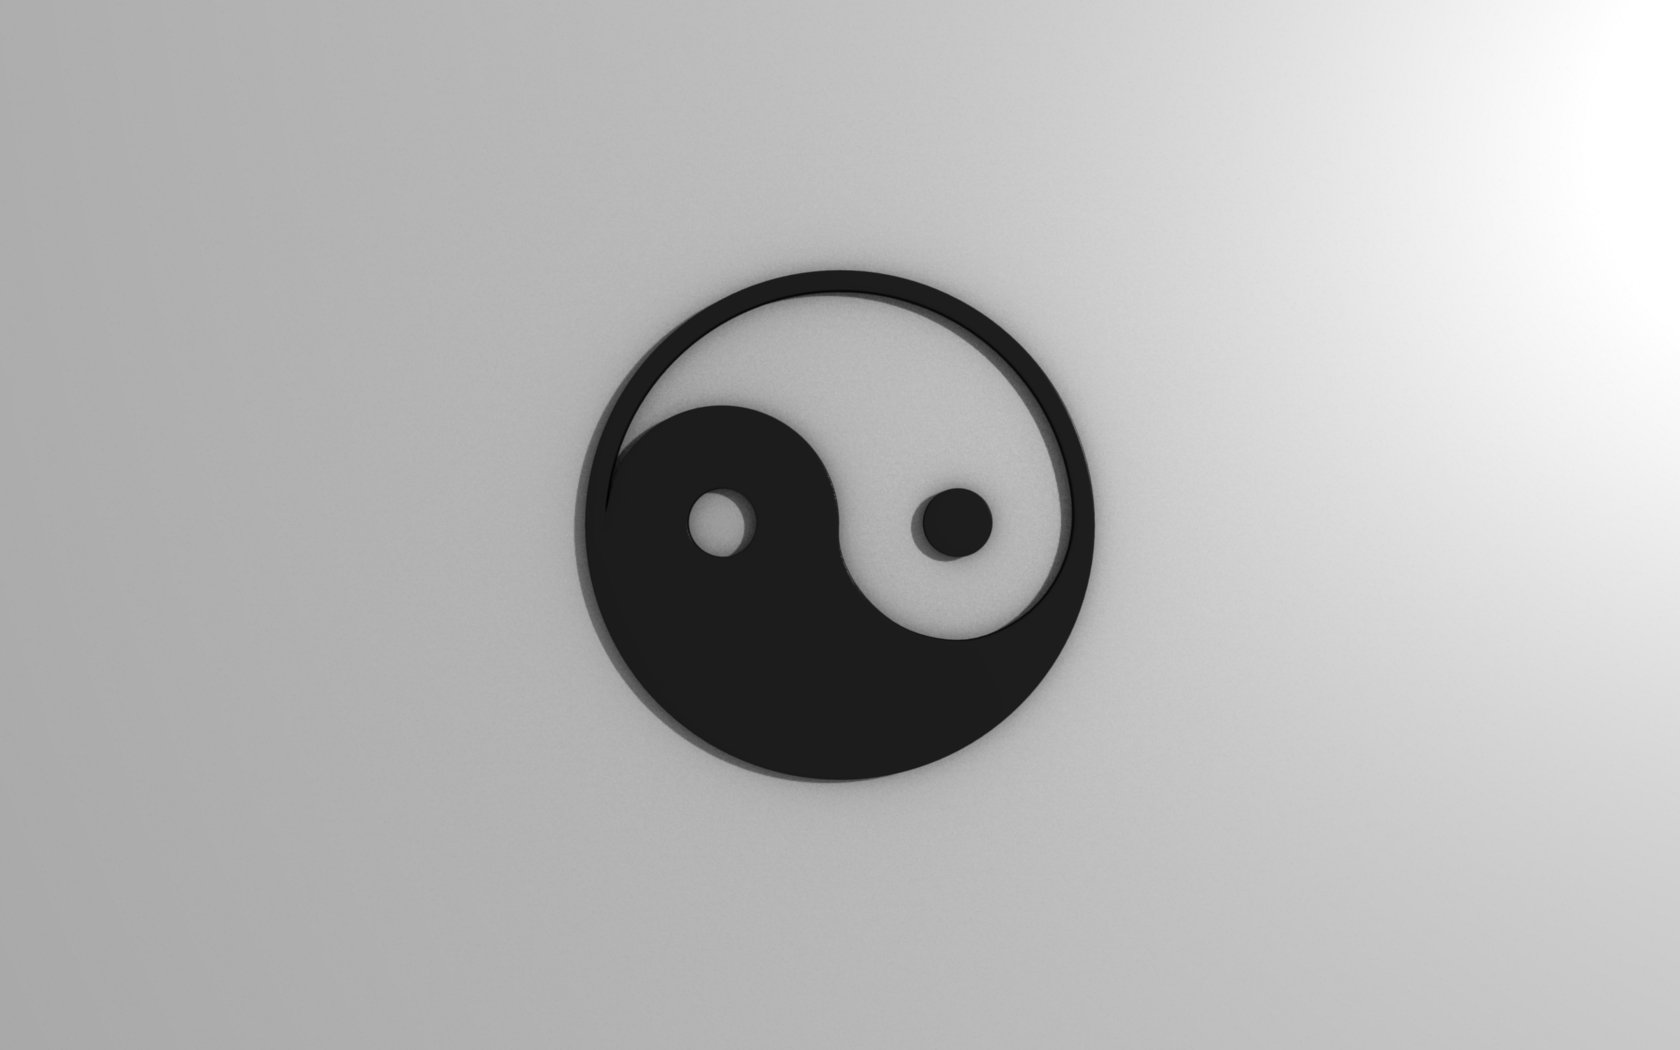 Ying Yang Wallpaper by CorpseArt on DeviantArt